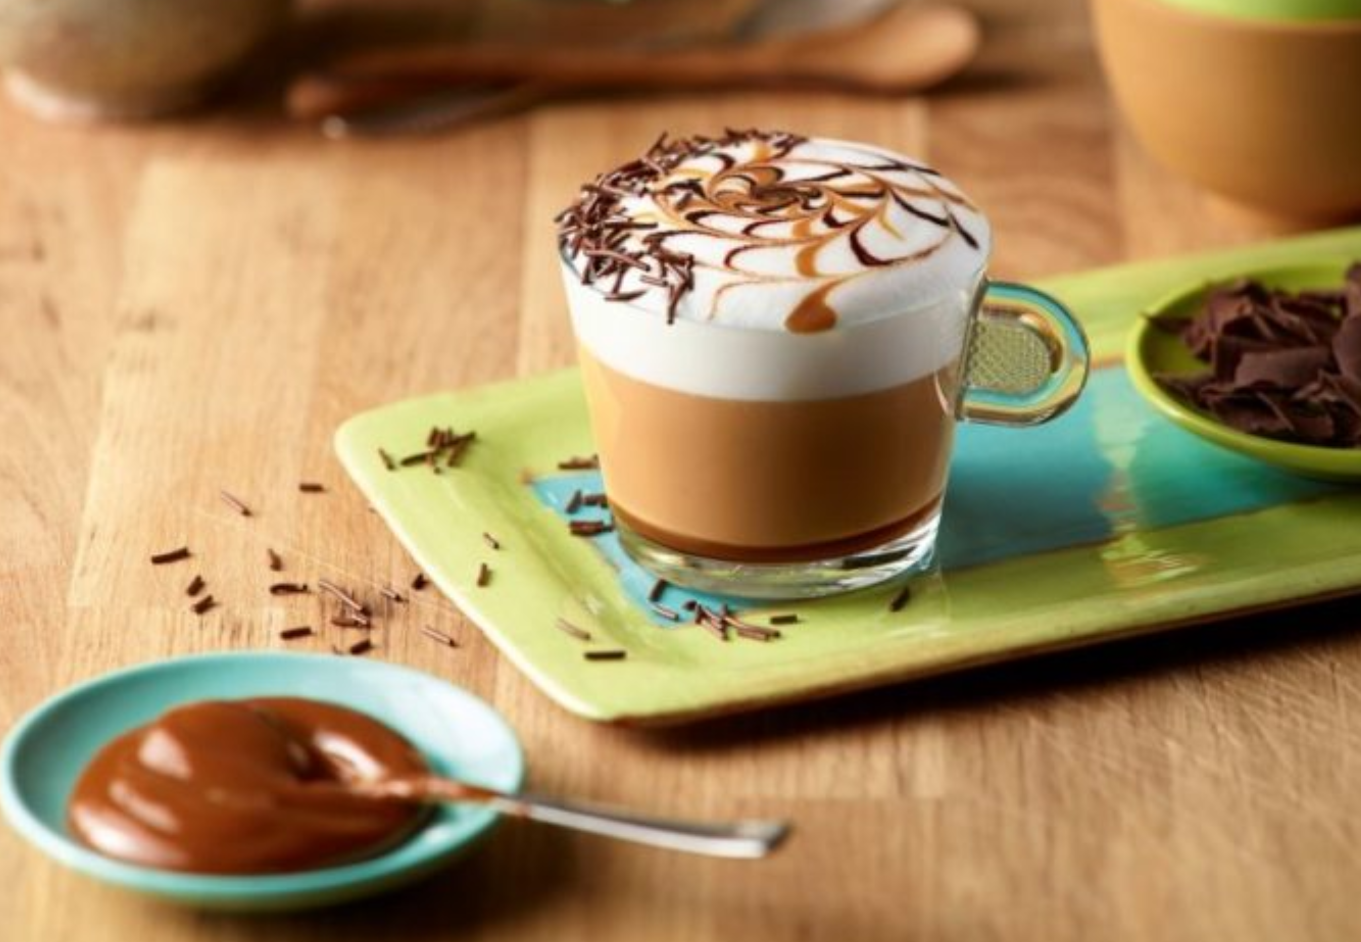 This is an incredibly delicious Brazilian-style dessert coffee that can be complemented, for example, with a light French mousse or any other dessert you like.